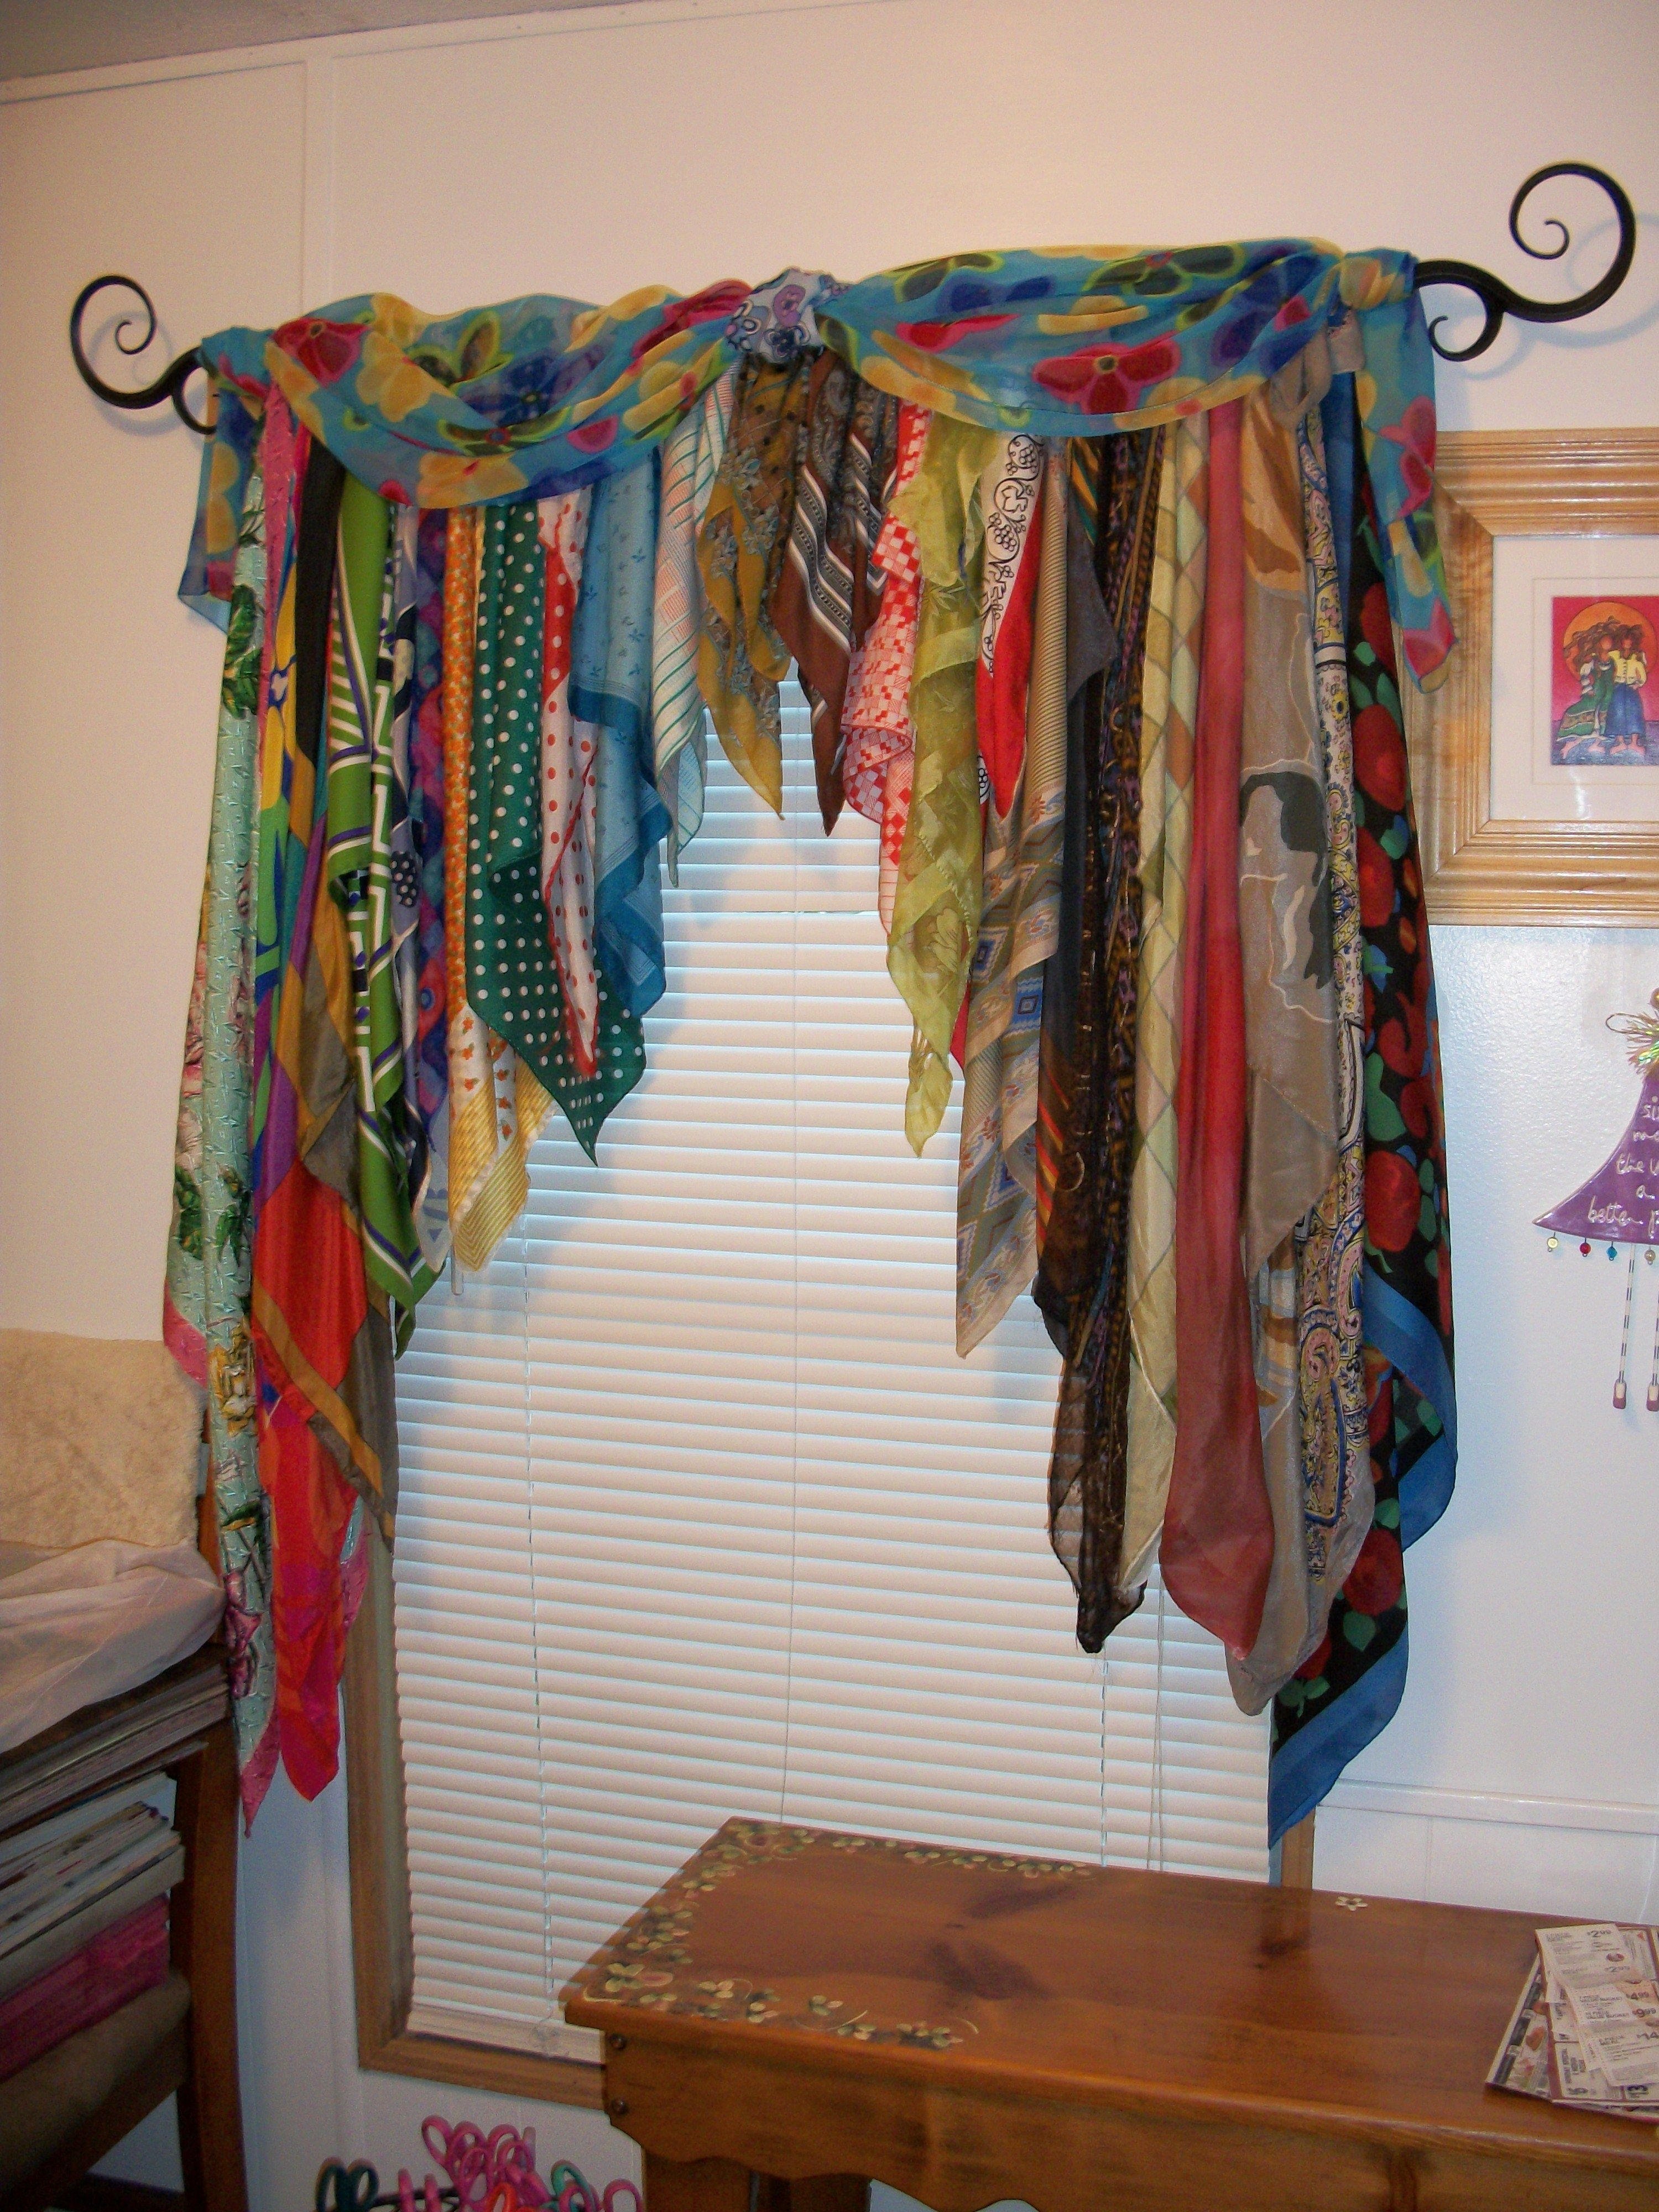 ☯☮ॐ American Hippie DIY Crafts ~ Use Old Scarves To Make A Bohemian Curtain!   I  Wana Do This, Need More Scarves